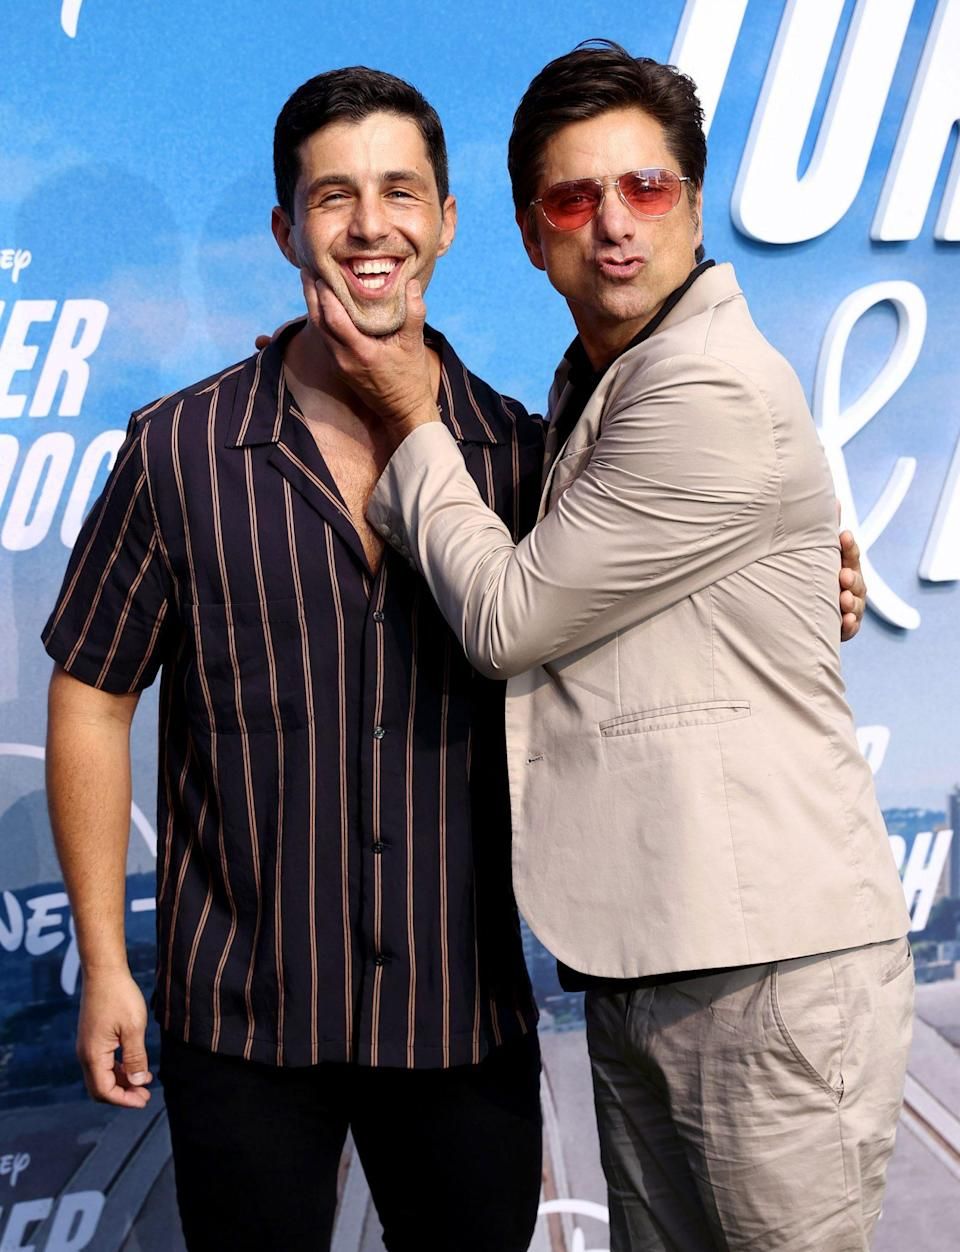 <p>Josh Peck and John Stamos attend the Disney+ <em>Turner & Hooch</em> premiere at the Westfield Century City Mall on July 15 in L.A.</p>